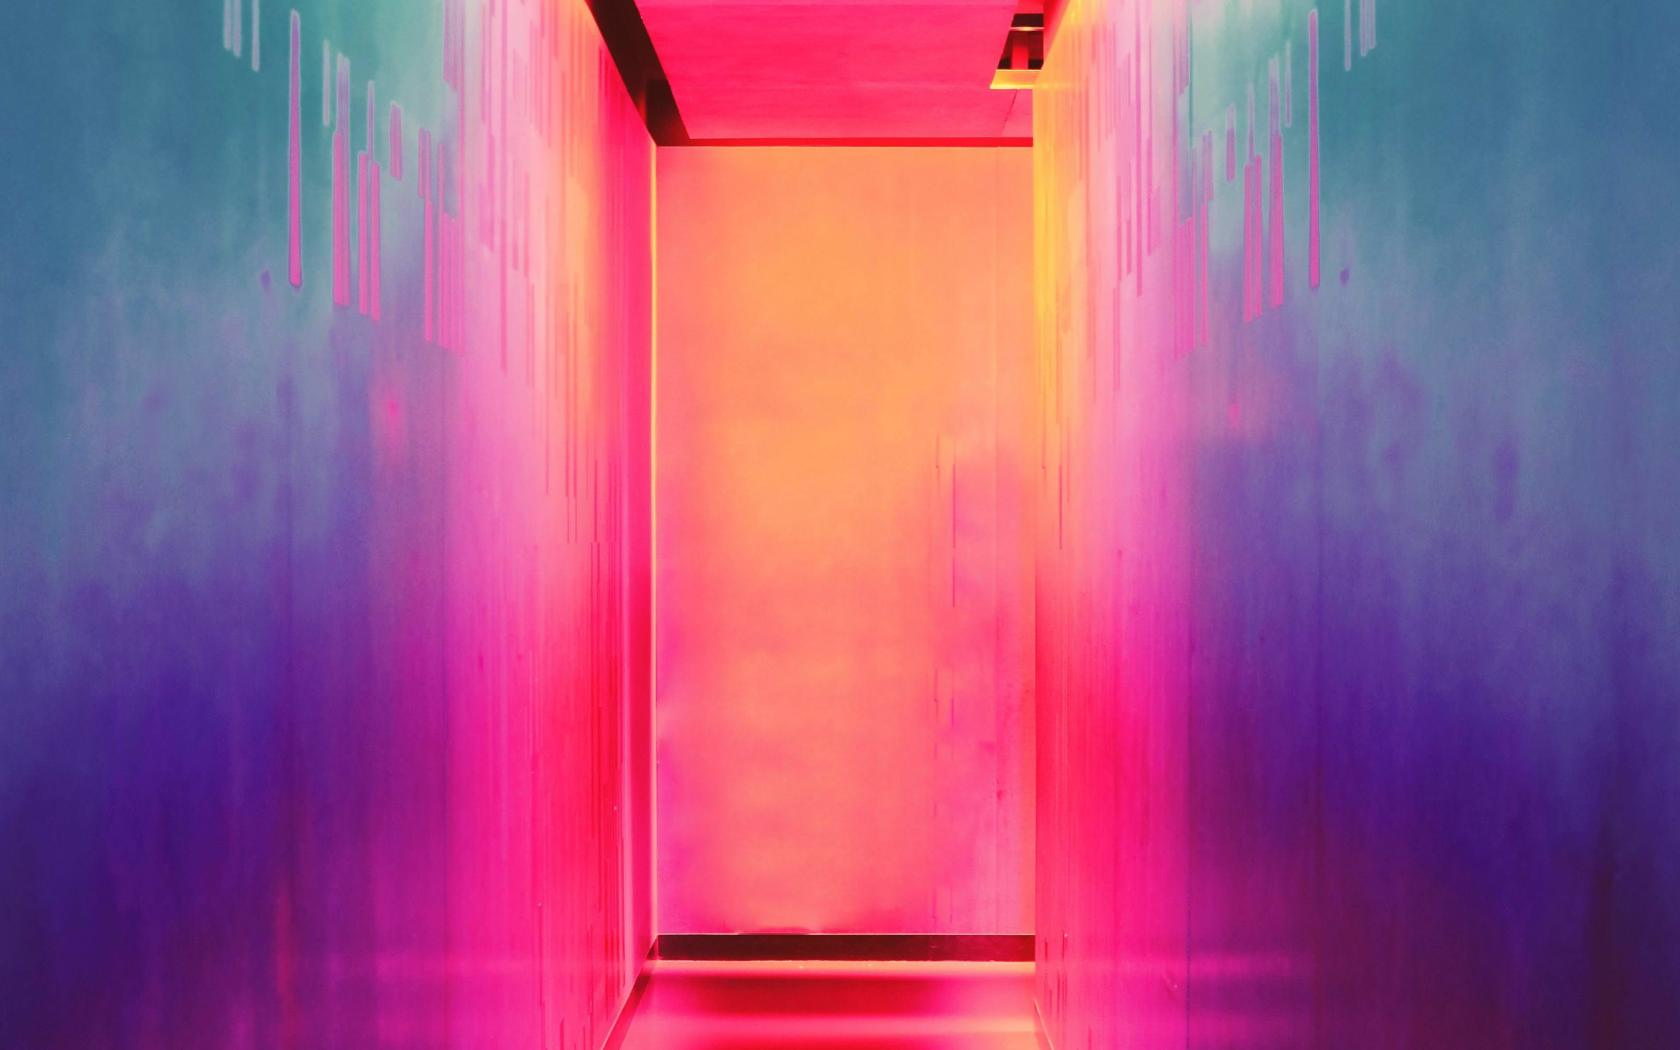 Bright Door Iphone X, HD 4K Wallpaper